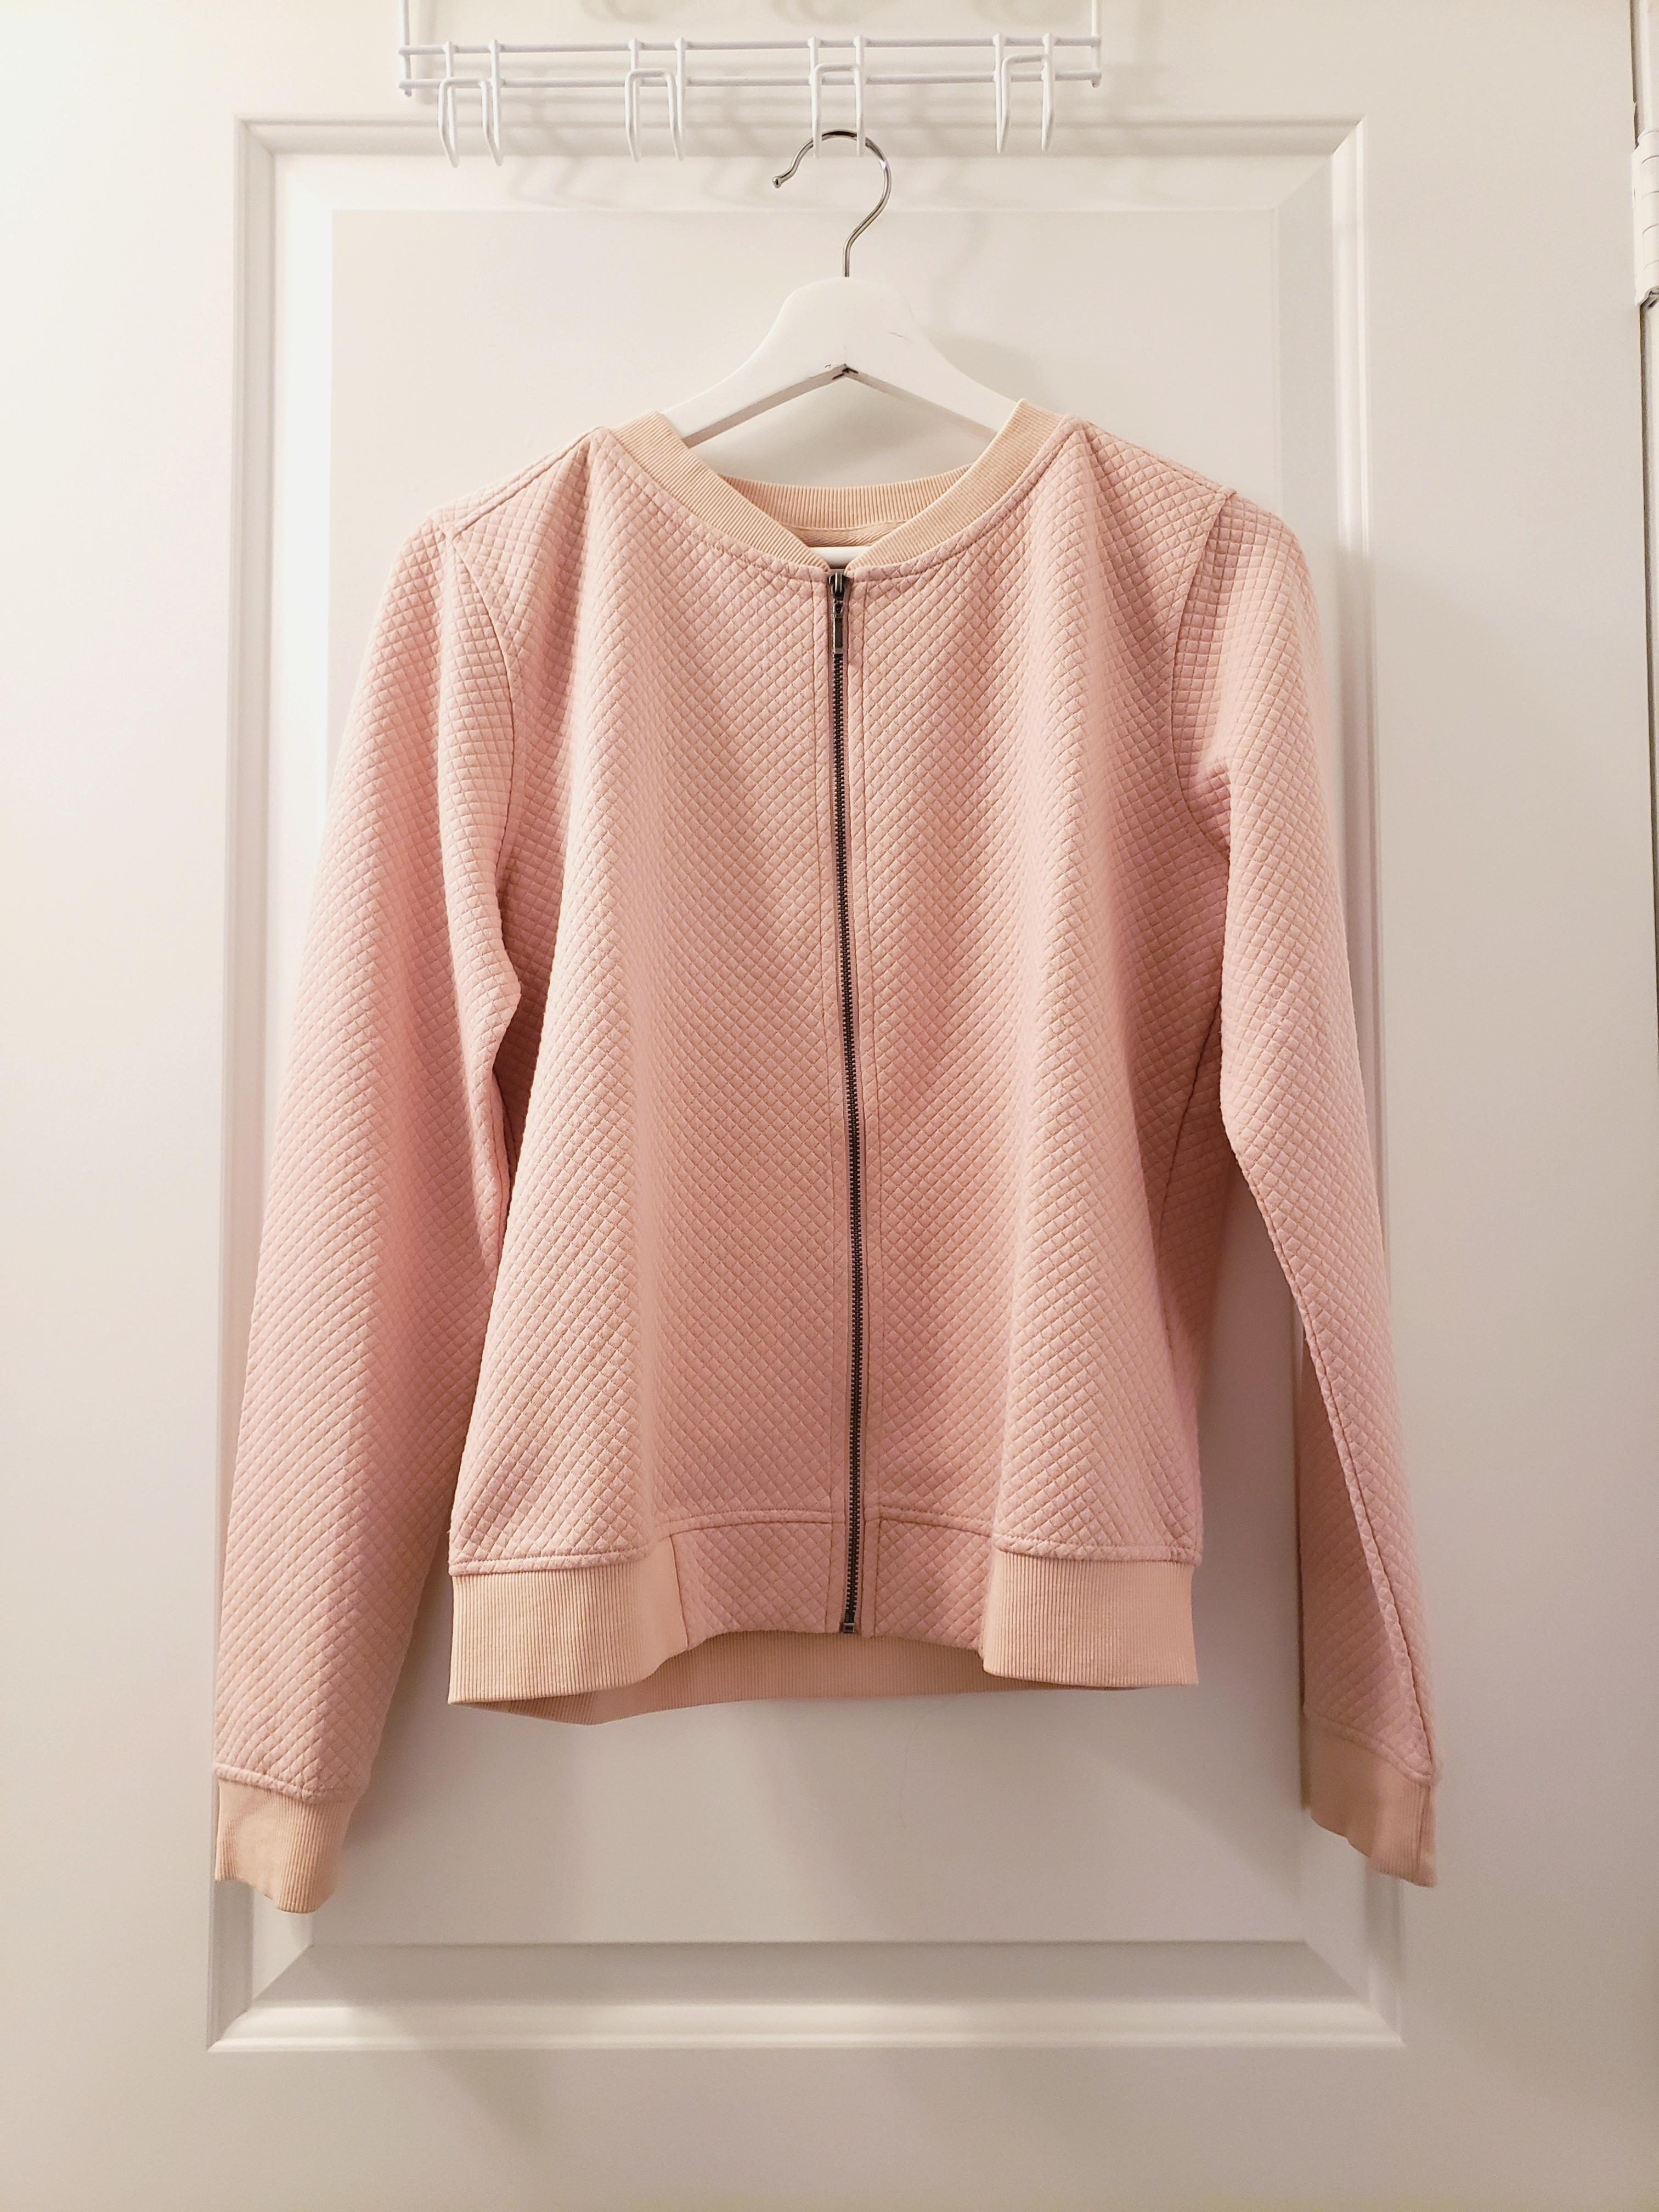 Pink Bomber Zip Up Sweater - Size S